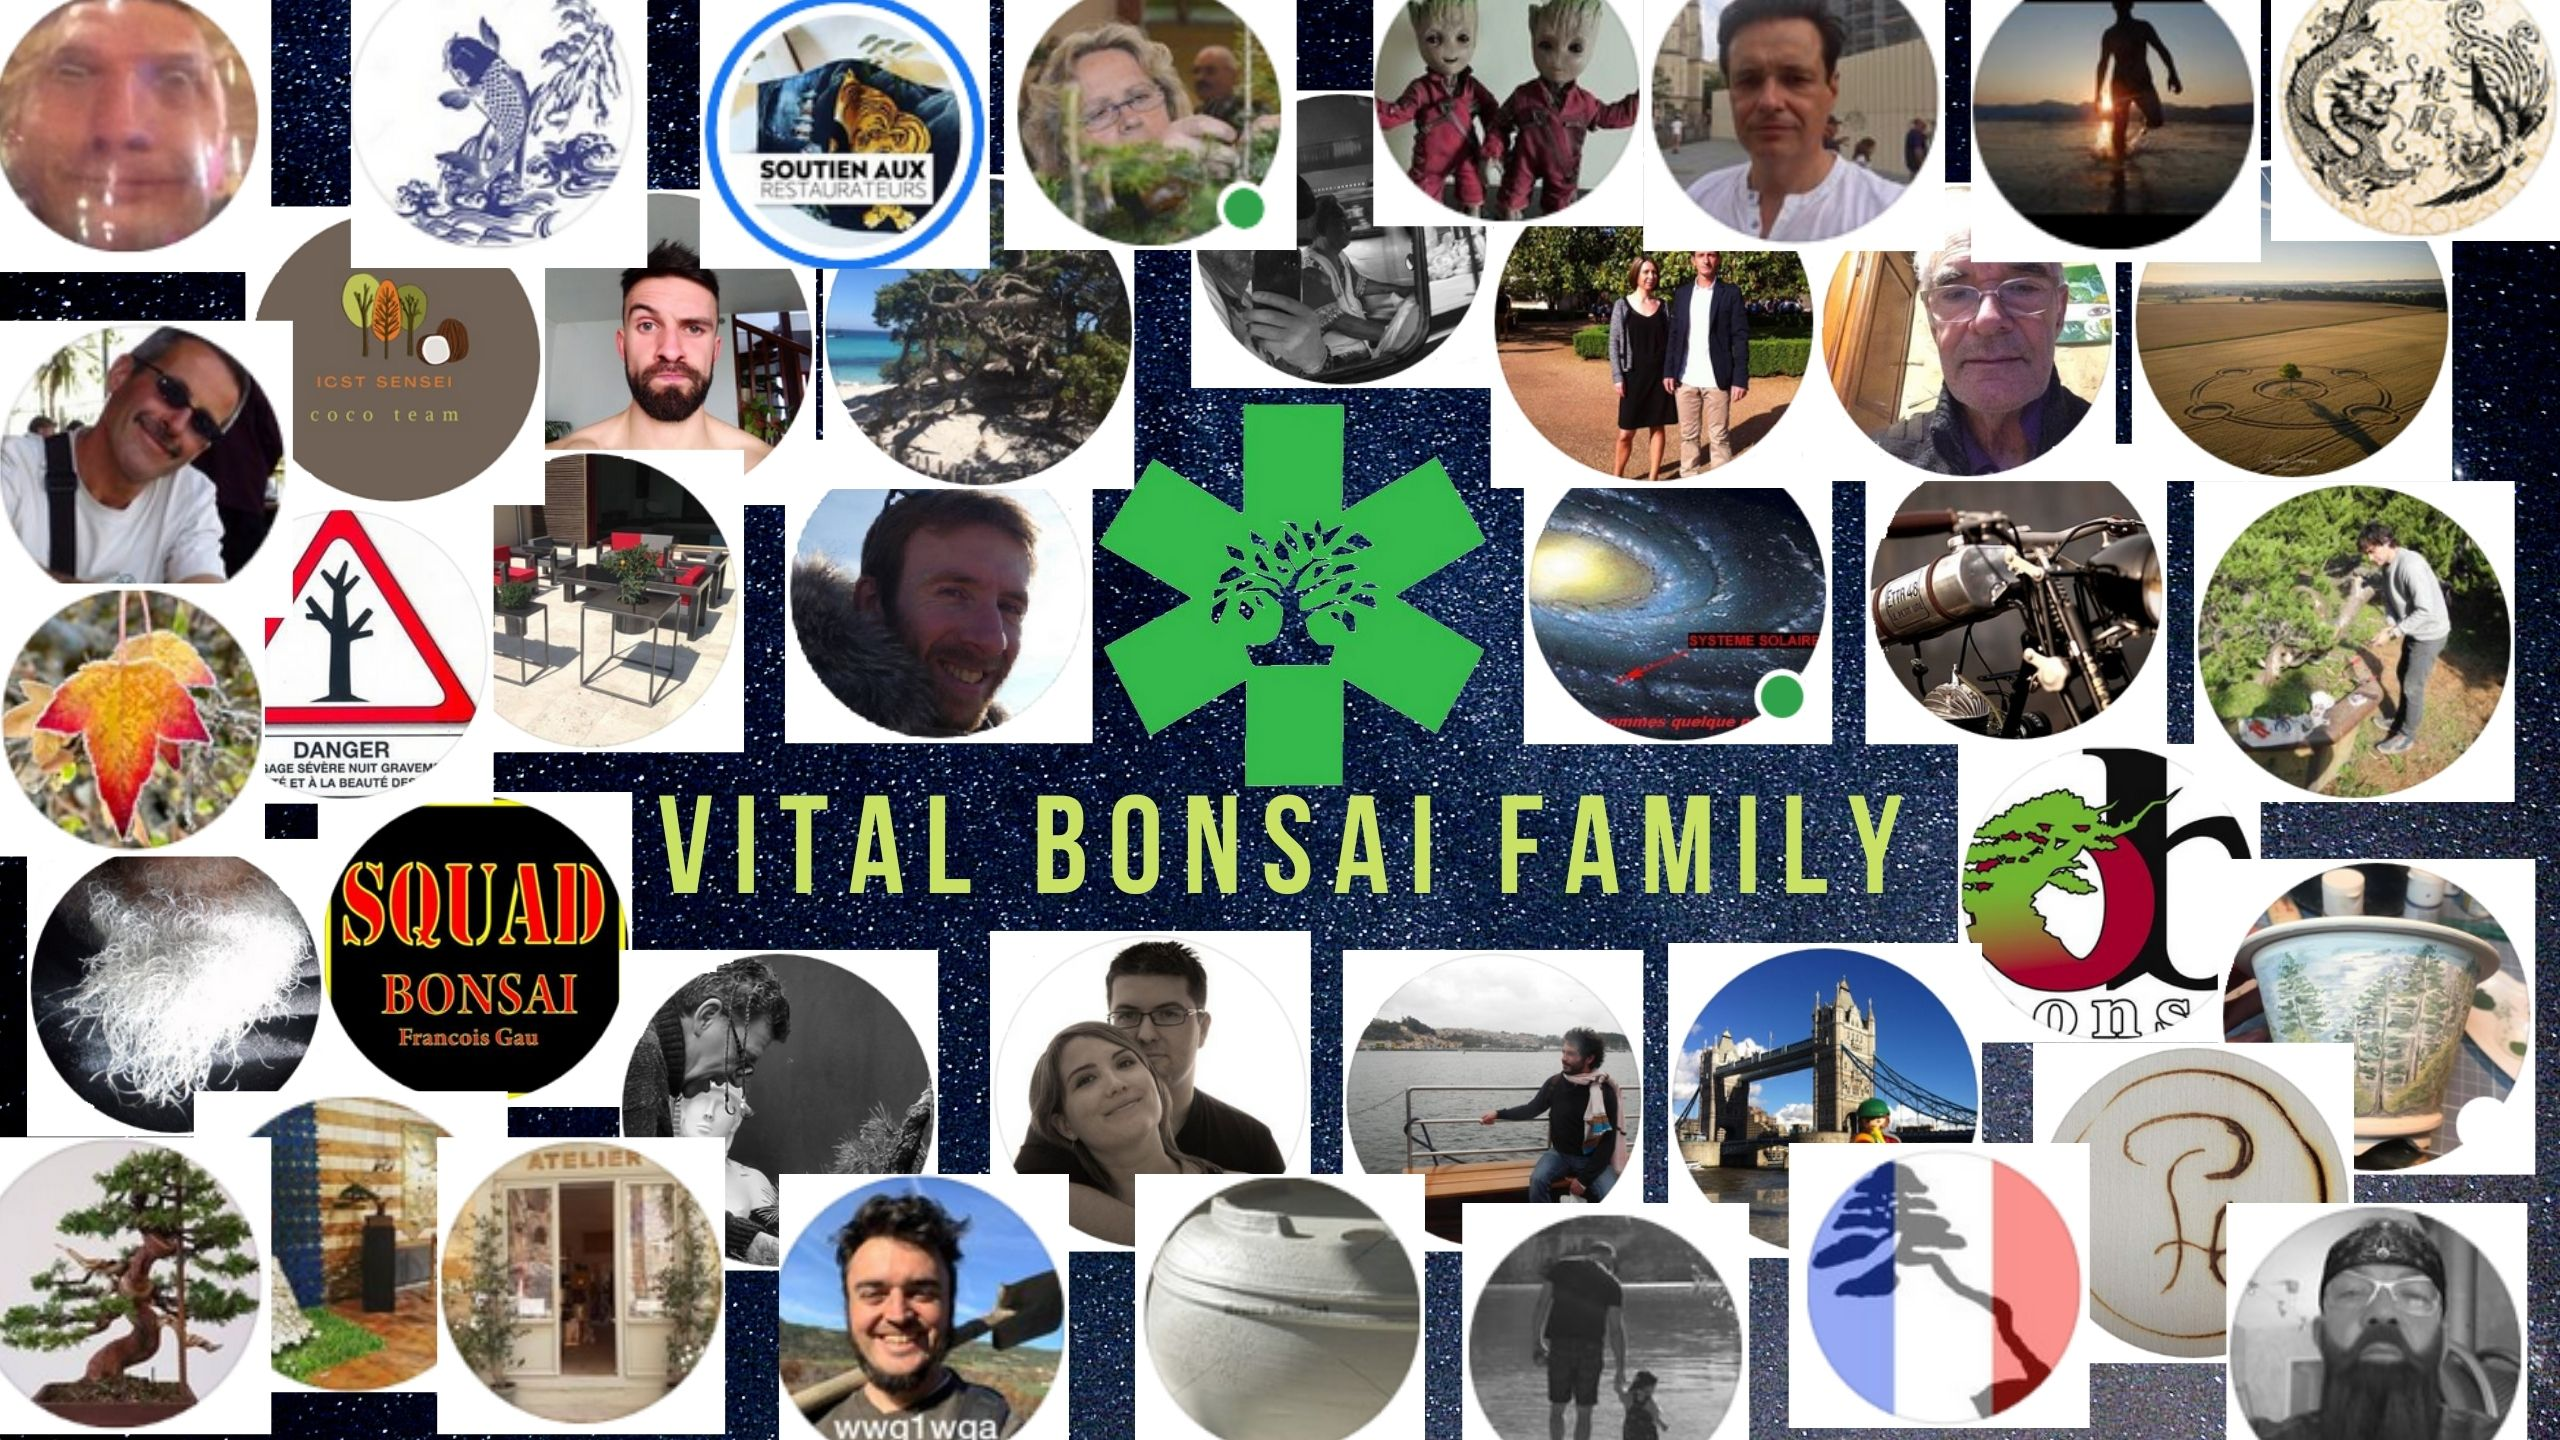 VITAL BONSAI FAMILY